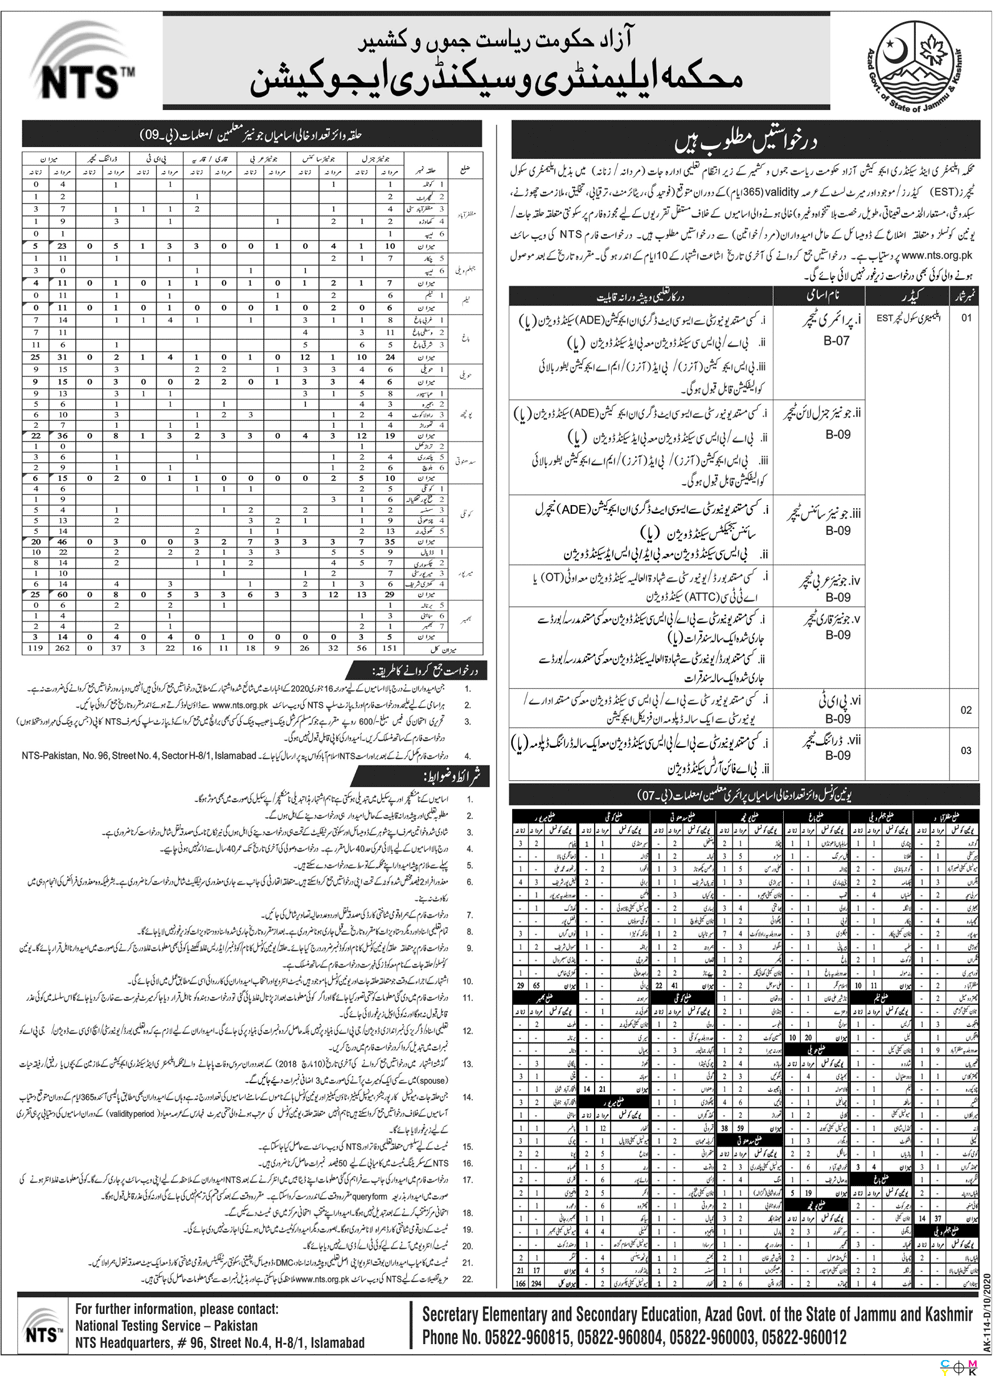 Elementary & Secondary Education Department Teaching Jobs in Pakistan 2020 - 2021 - Online Apply - www.nts.org.pk